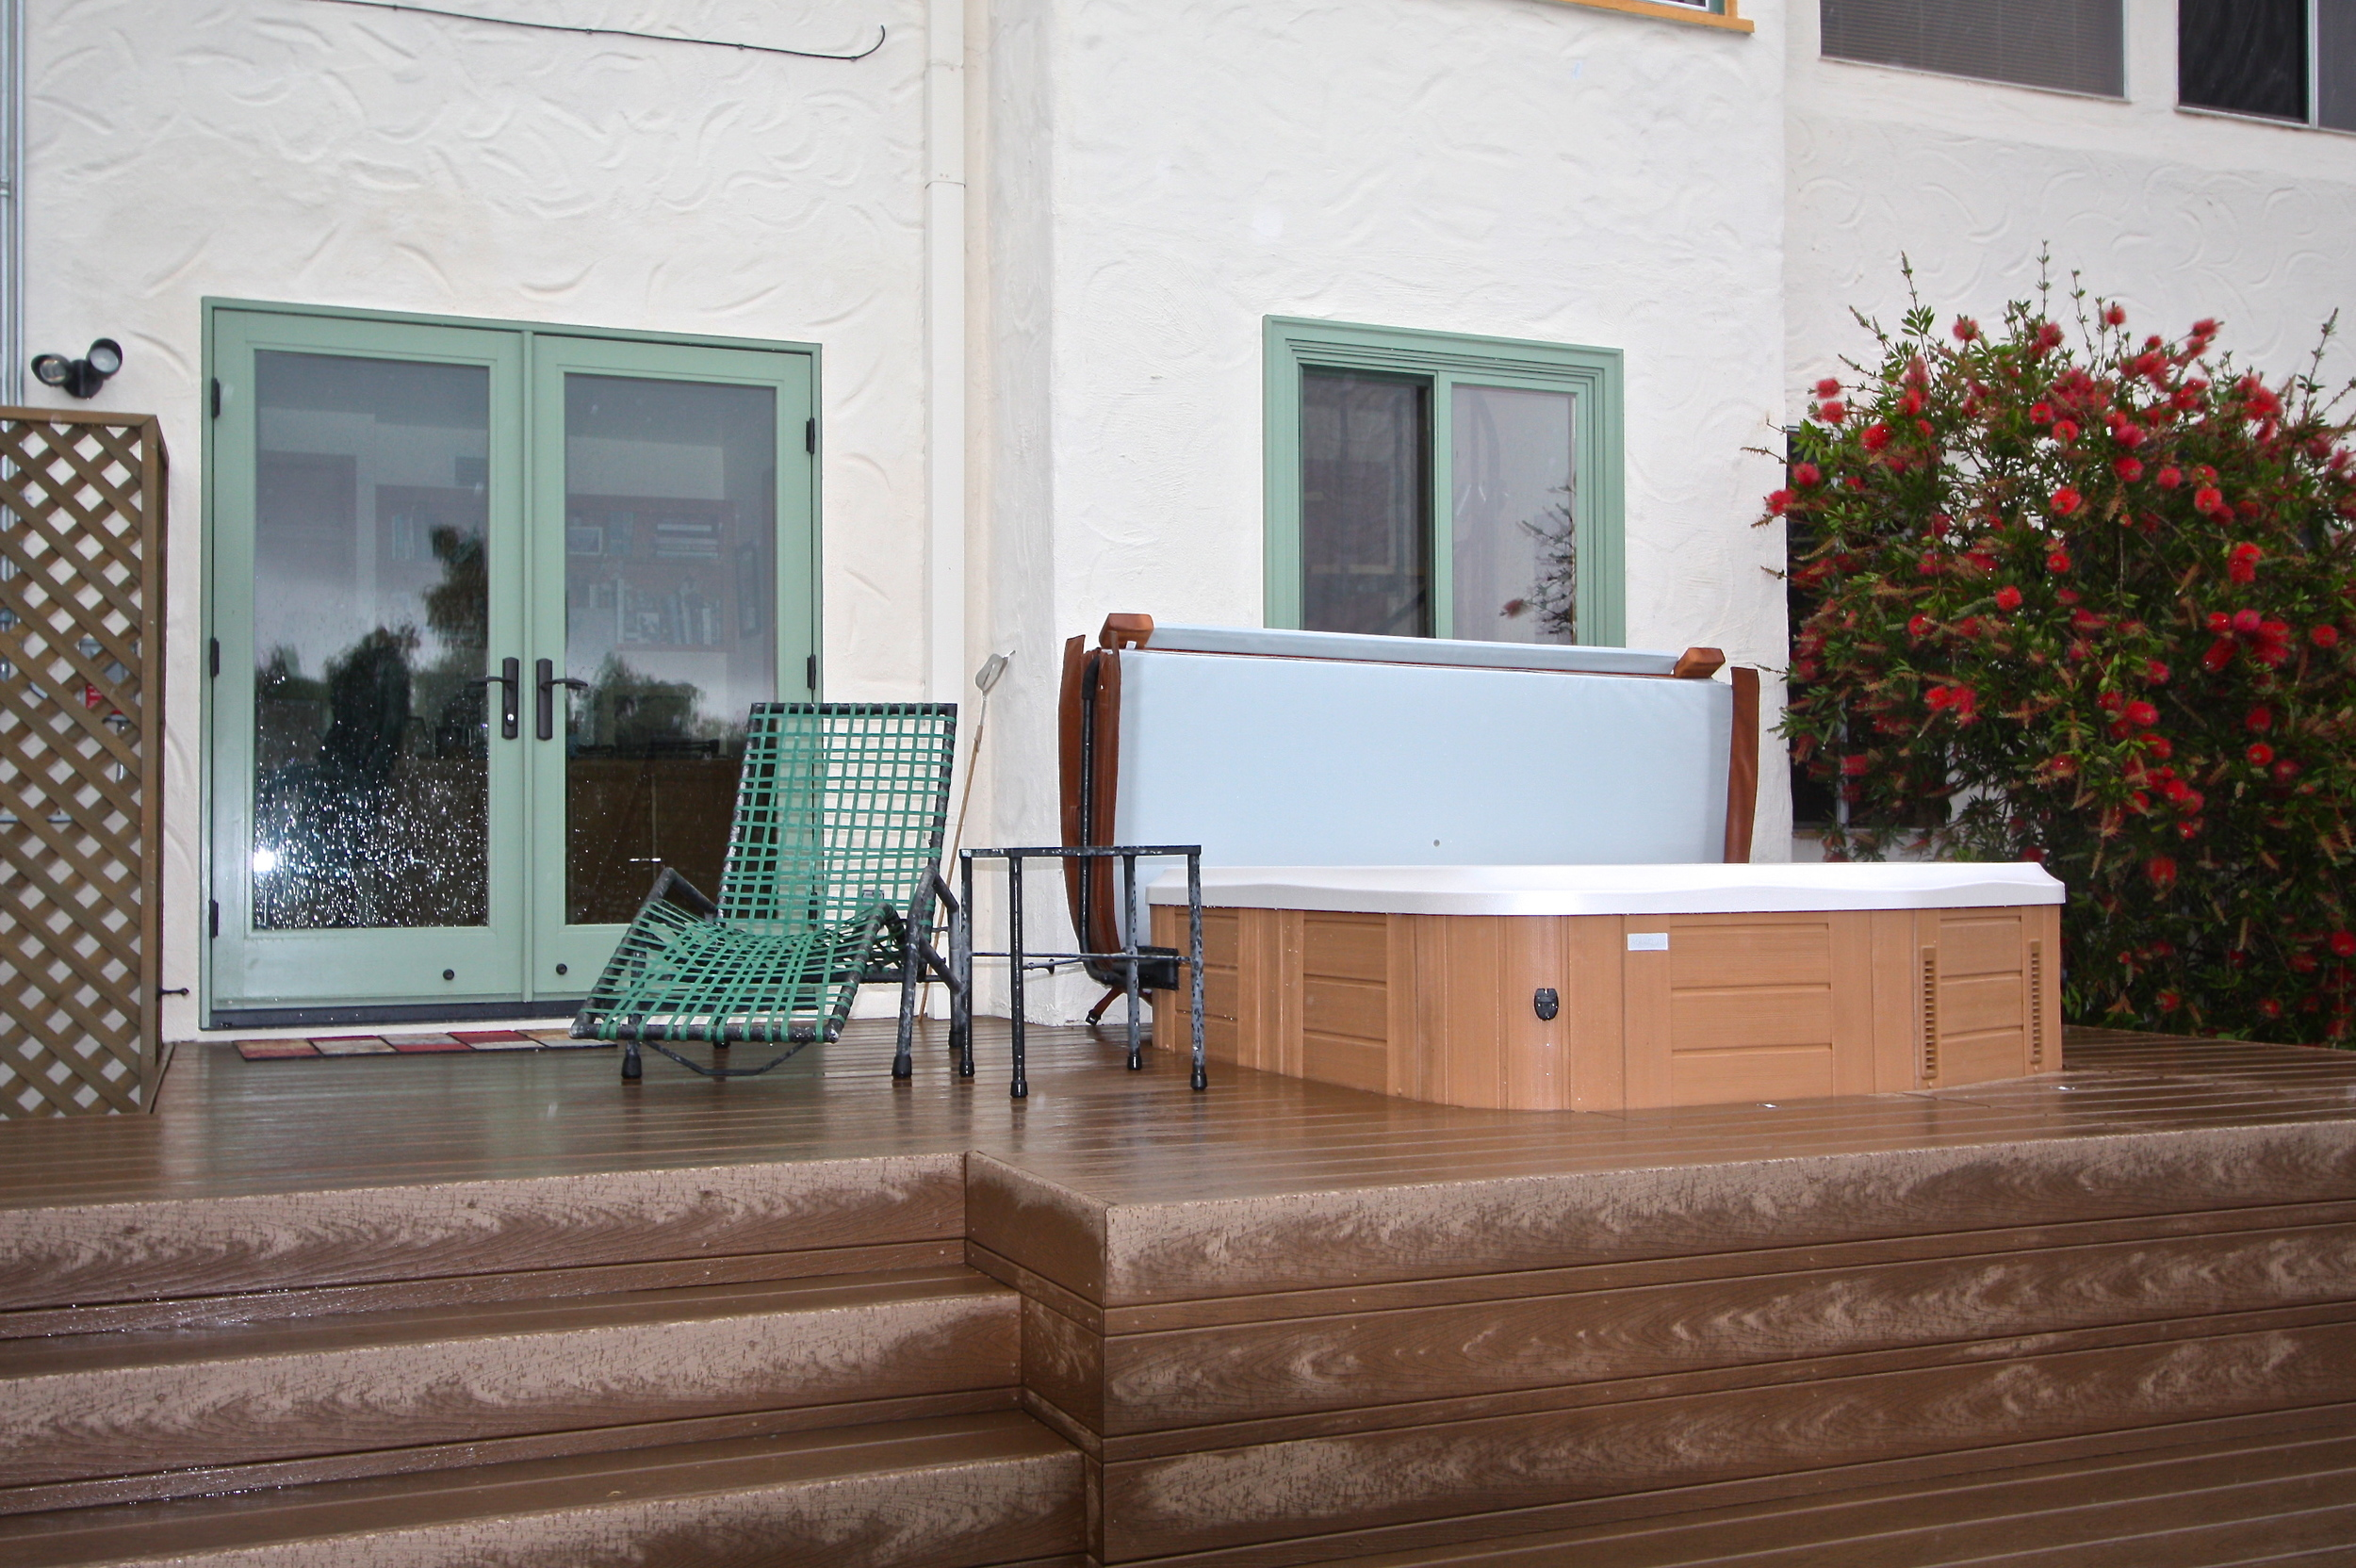 After: Multilevel deck and jacuzzi. Aluminum sliding door and window replaced with fiberglass french doorand window.